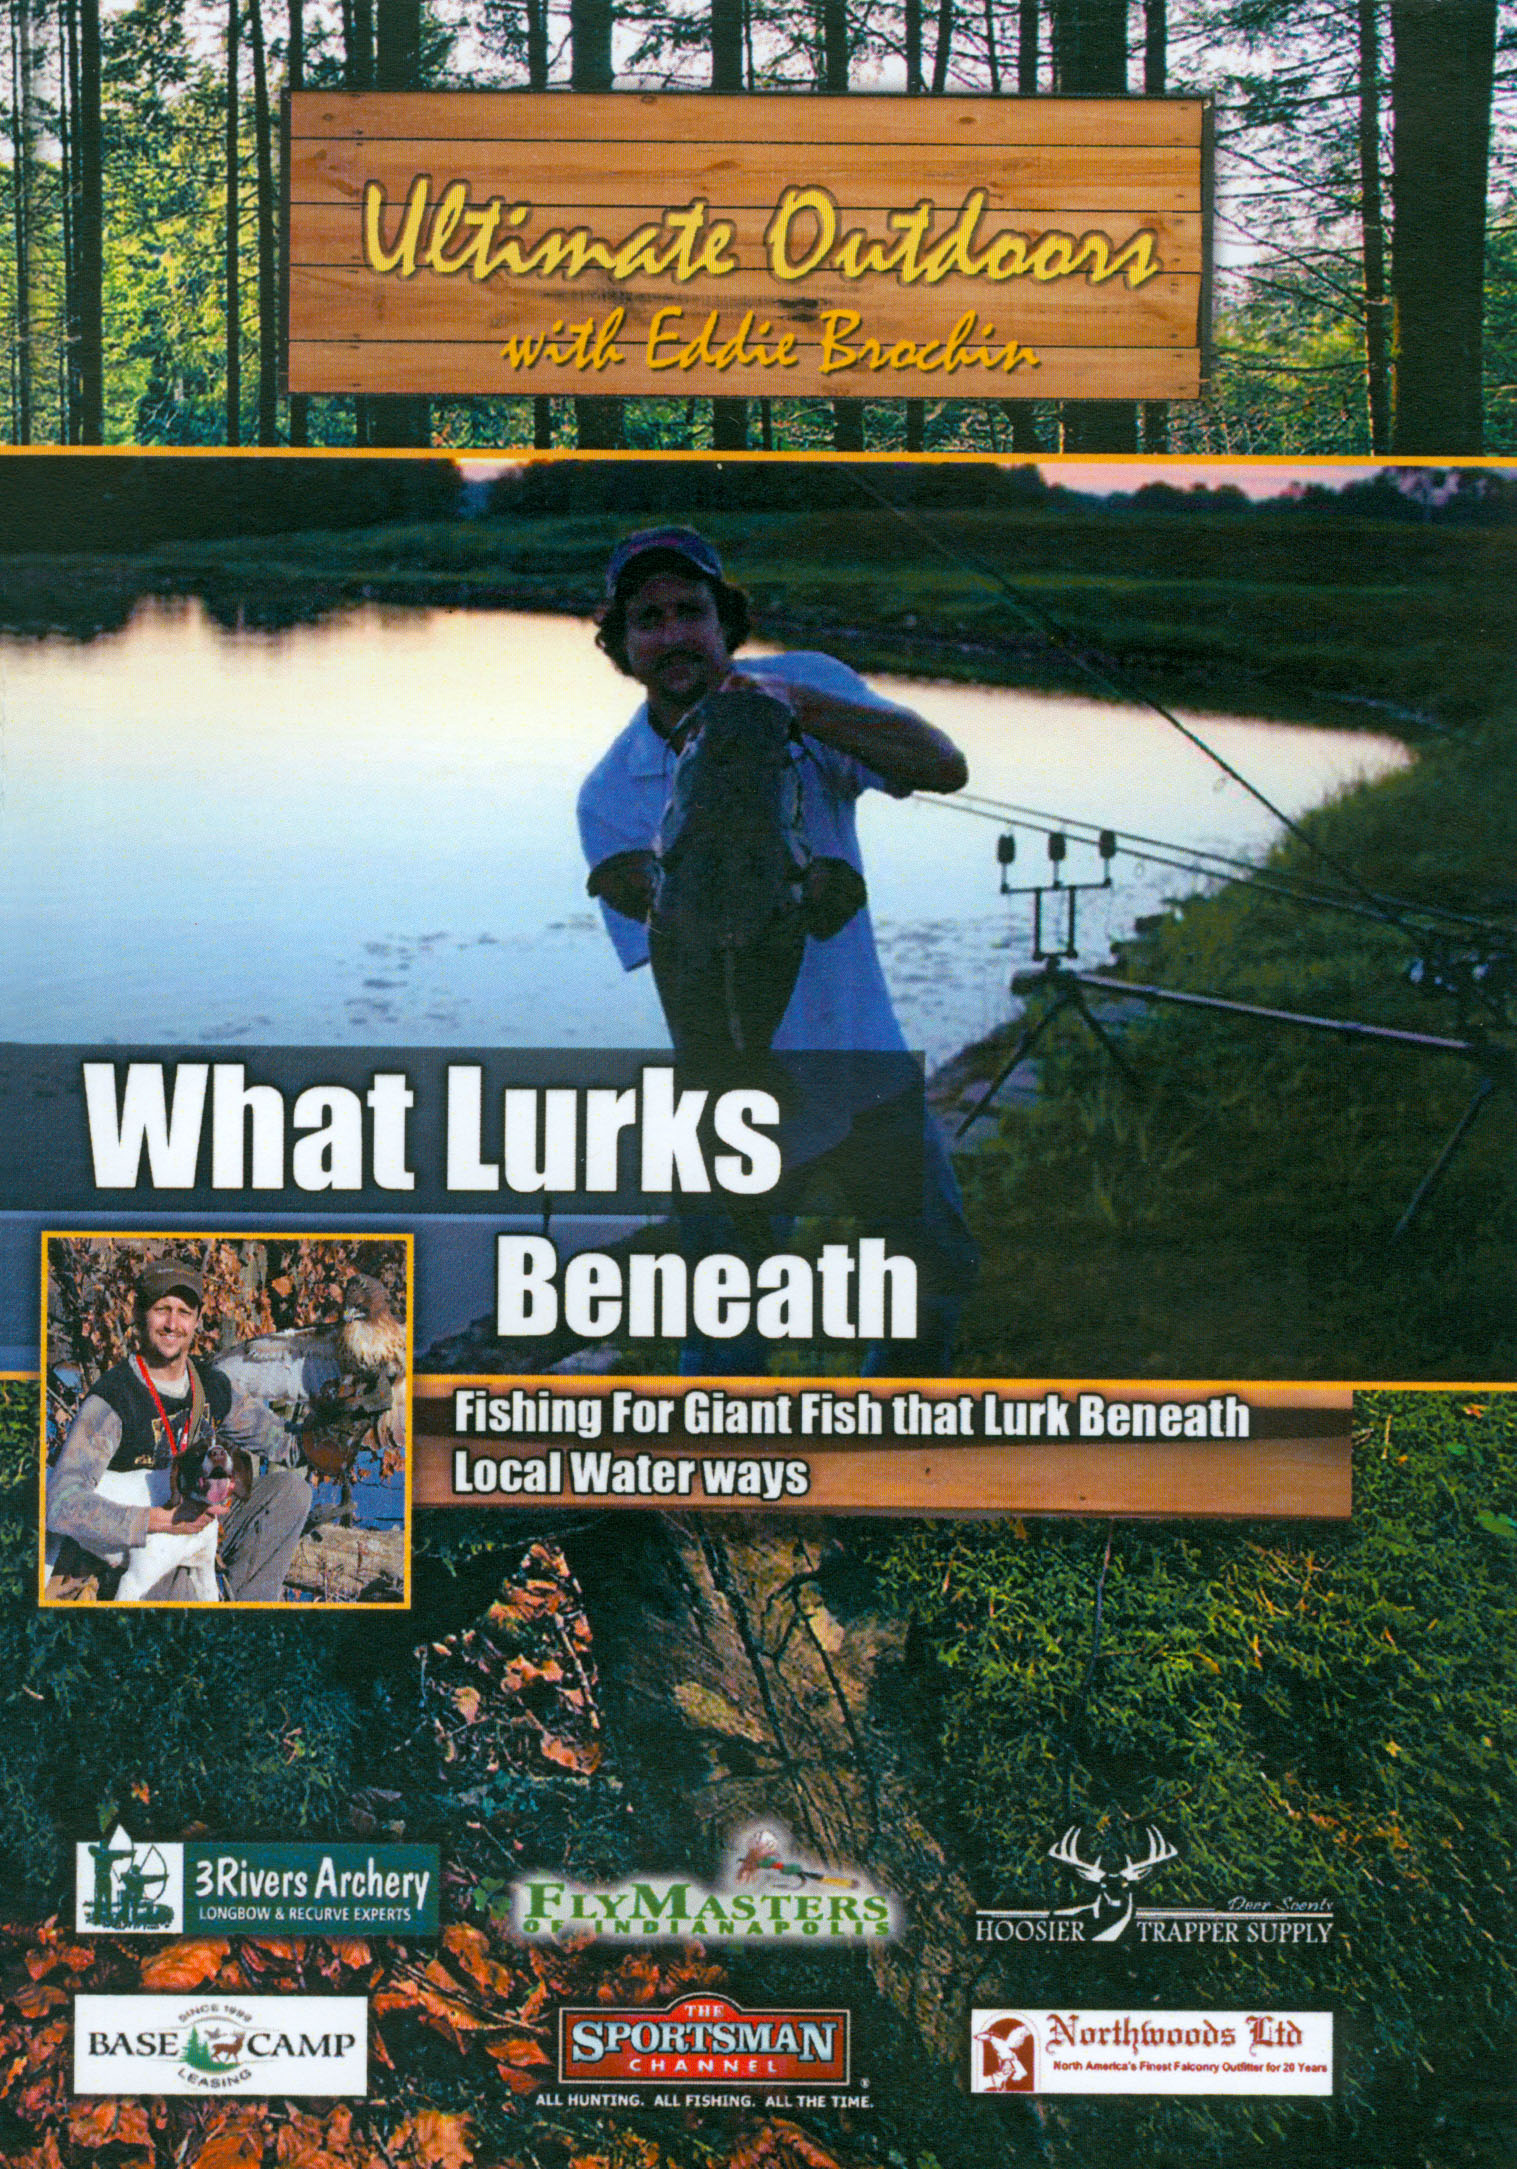 Ultimate Outdoors With Eddie Brochin: What Lurks Beneath